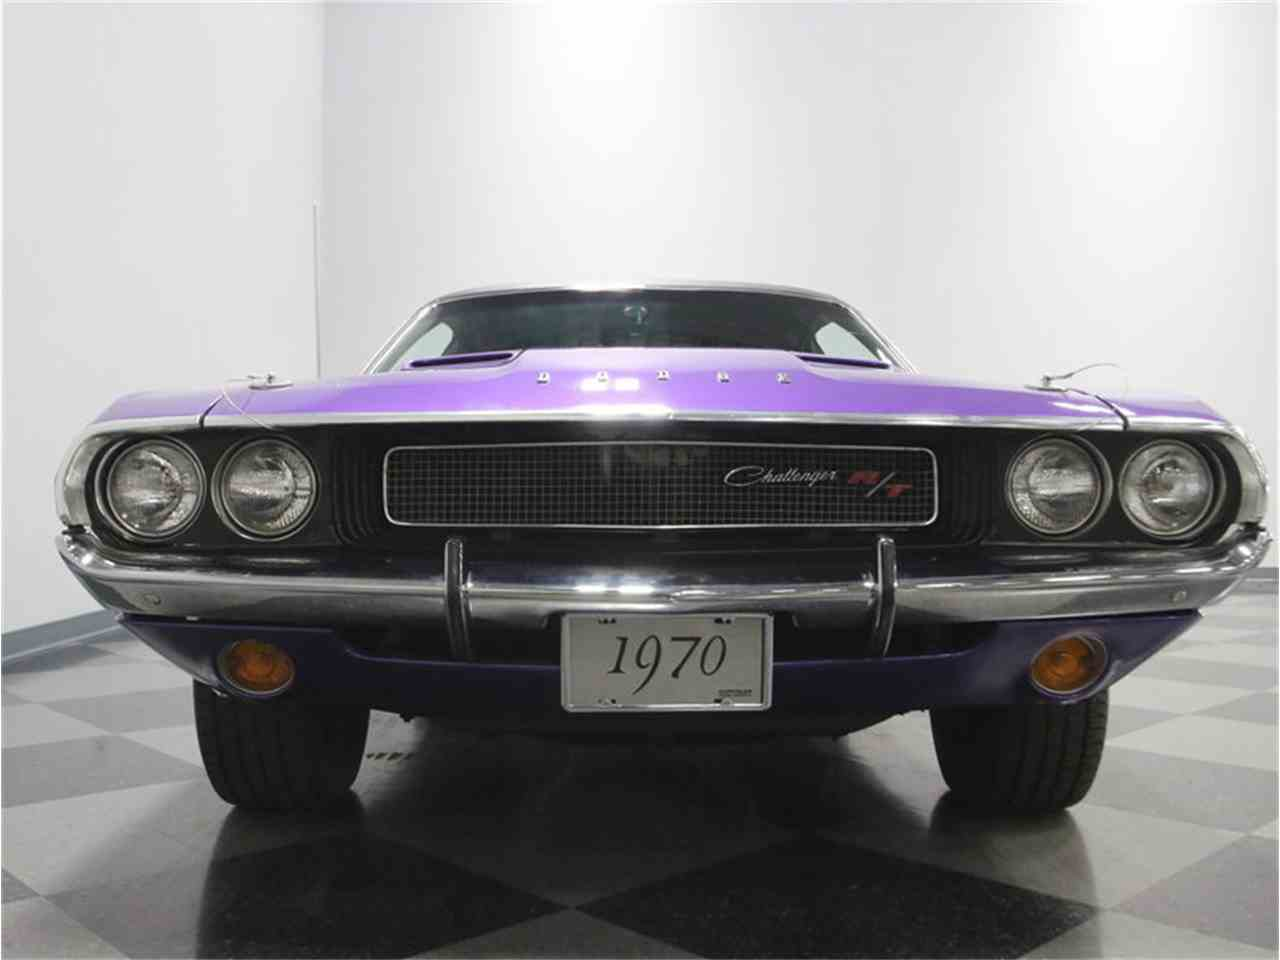 Large Picture of 1970 Dodge Challenger R/T located in Tennessee - $64,995.00 Offered by Streetside Classics - Nashville - M29Z